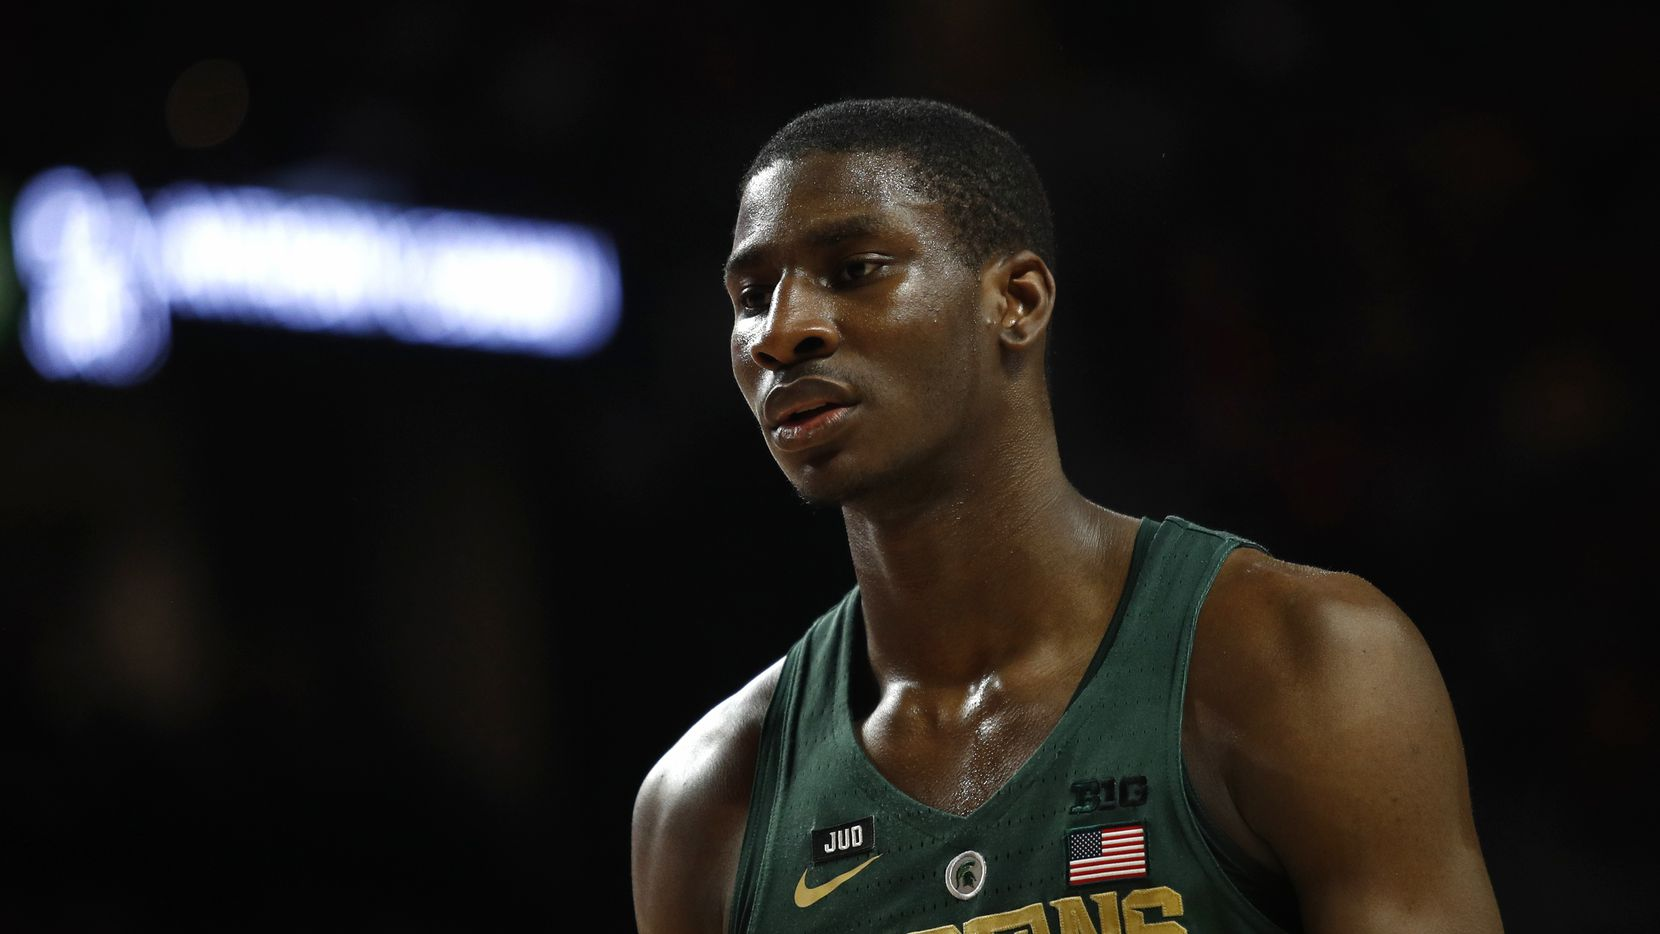 Michigan State forward Jaren Jackson Jr. walks on the court in the first half of an NCAA college basketball game against Maryland in College Park, Md., Sunday, Jan. 28, 2018. (AP Photo/Patrick Semansky)